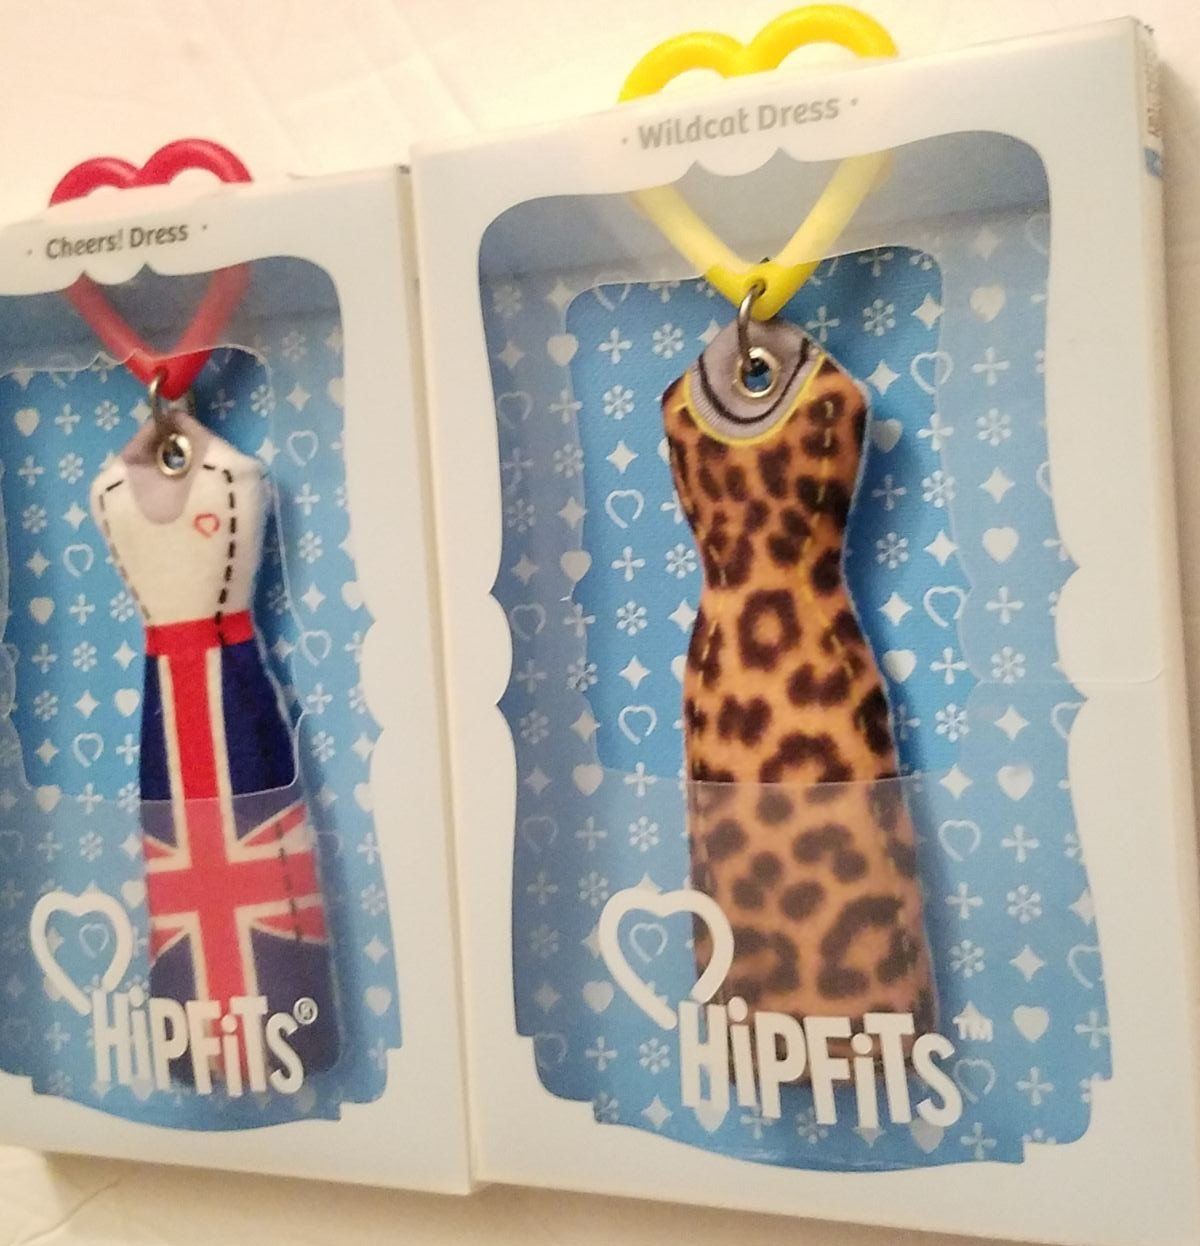 Hip Fits Cheers! & Wild Cat Dresse New Mercari (With